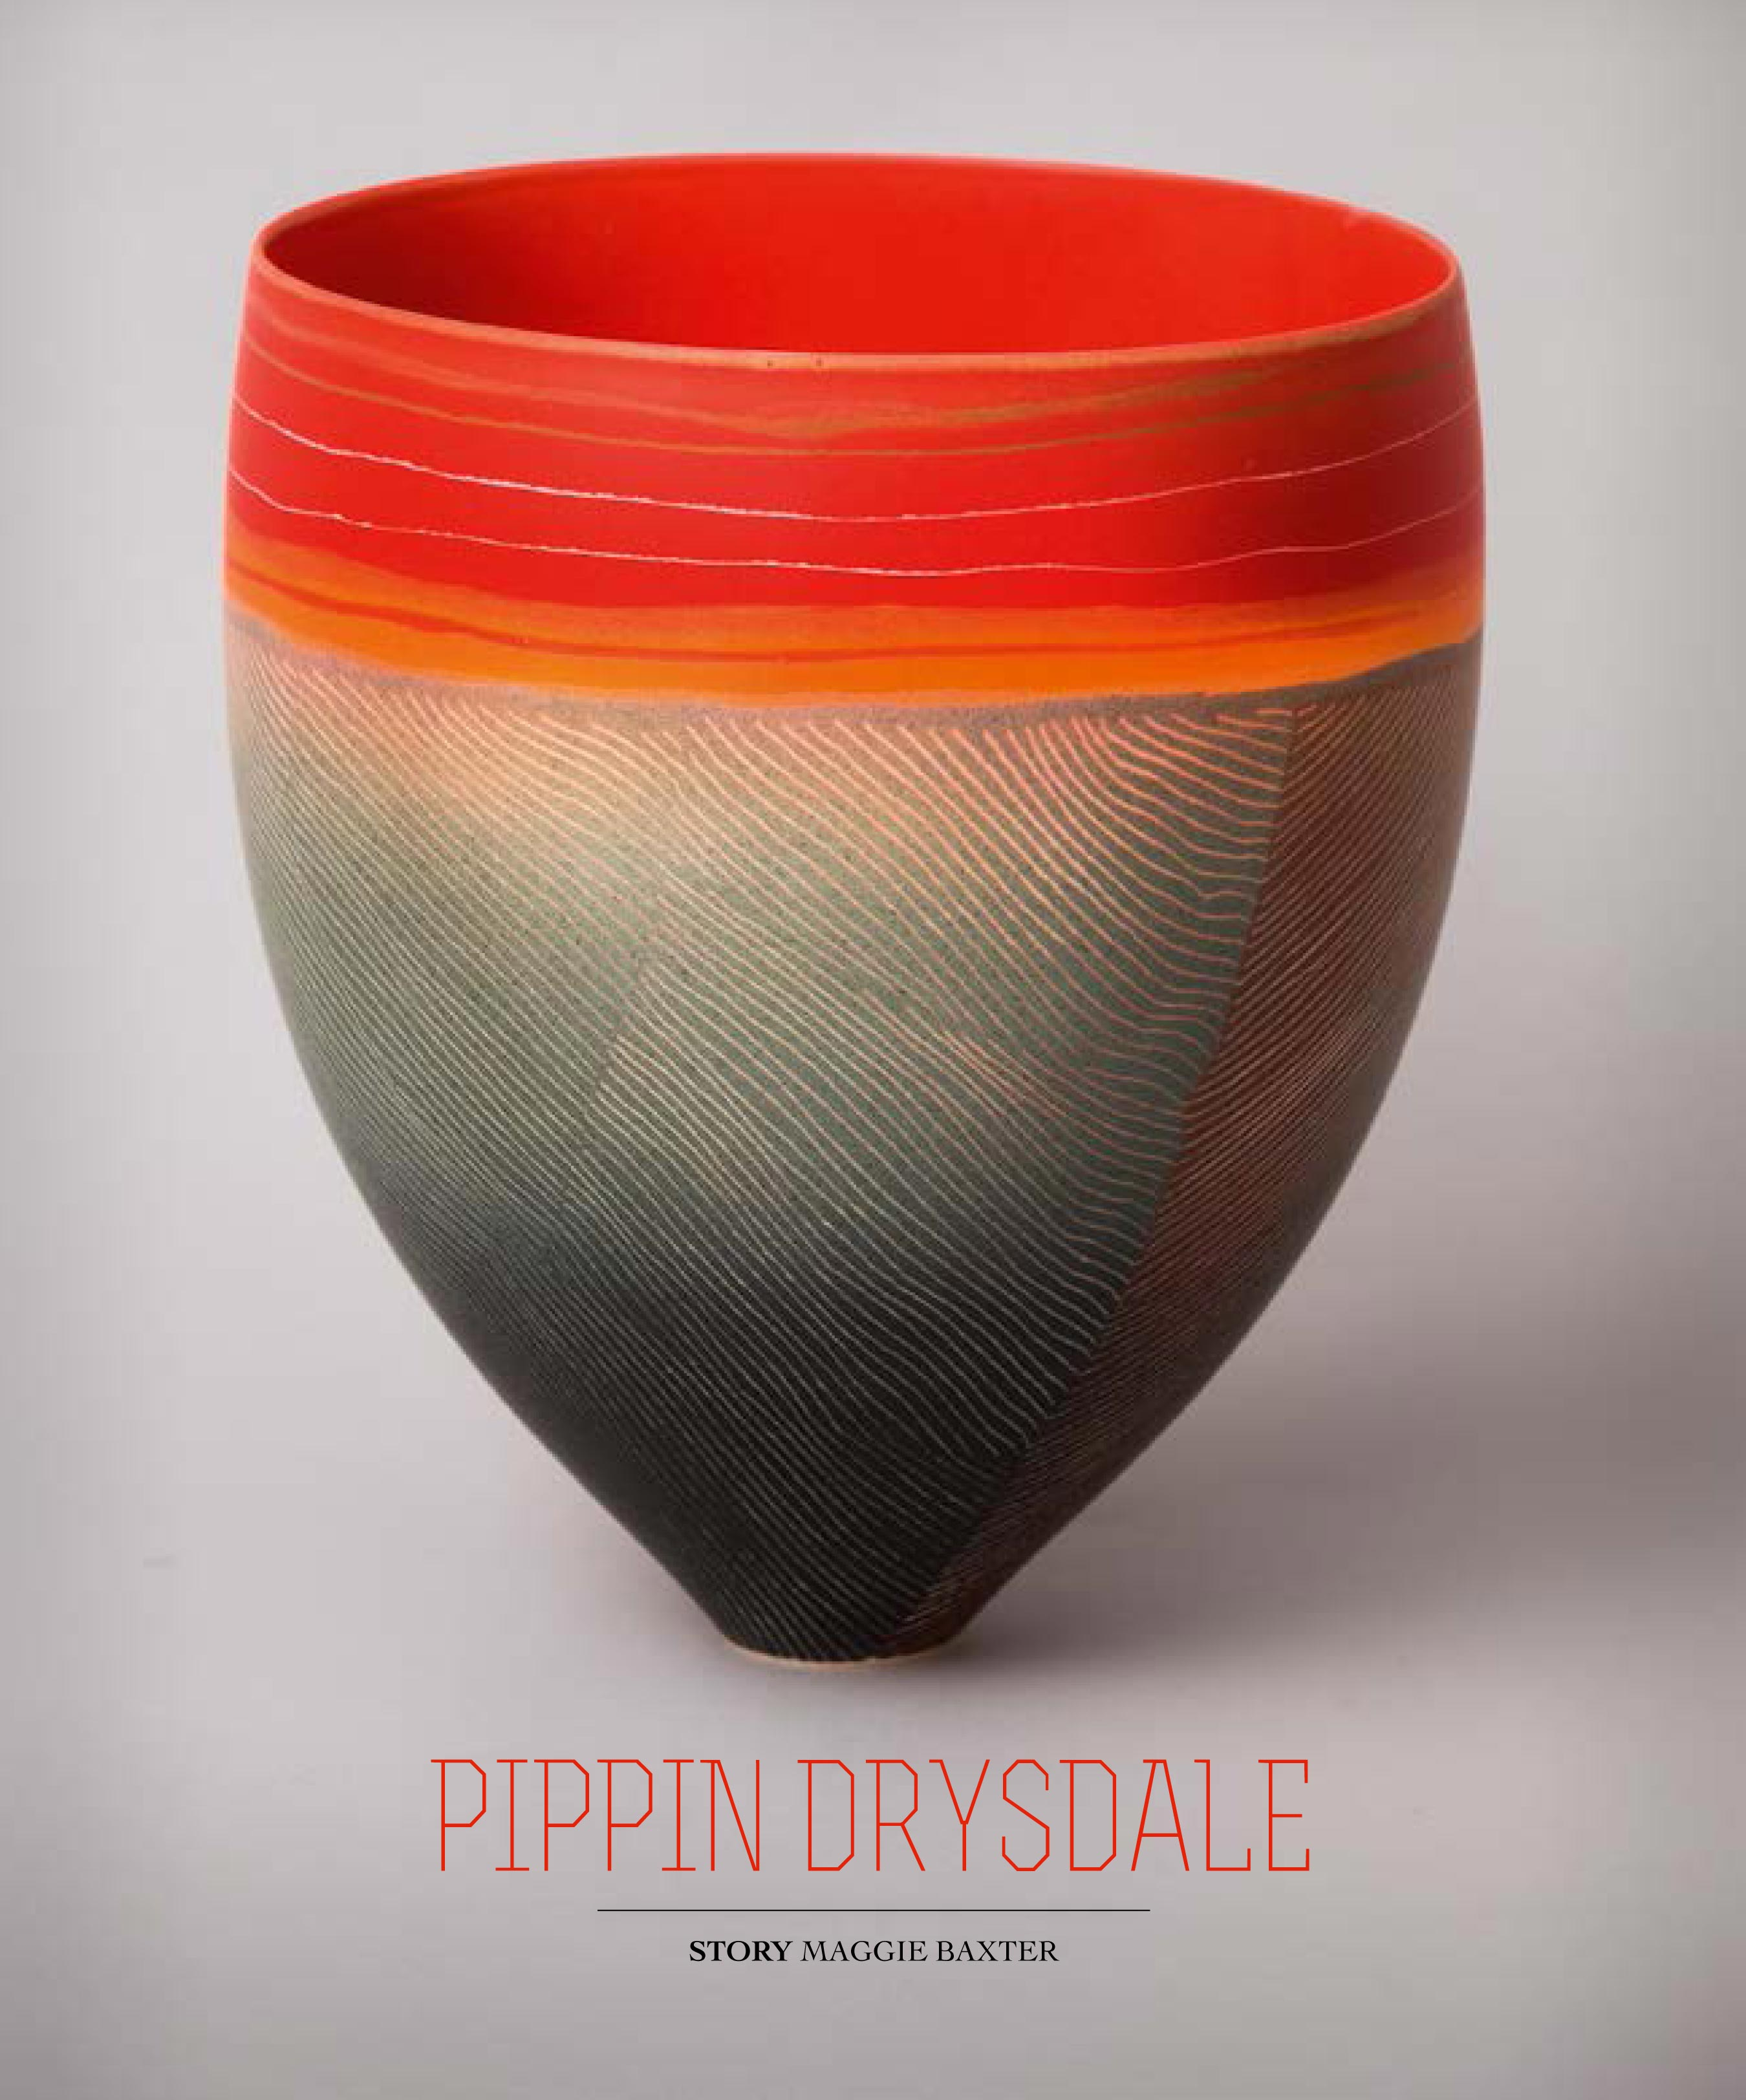 Pippin drysdale in artist profile by maggie baxter sabbia gallery pippin drysdale artist profile article november 2015 reviewsmspy